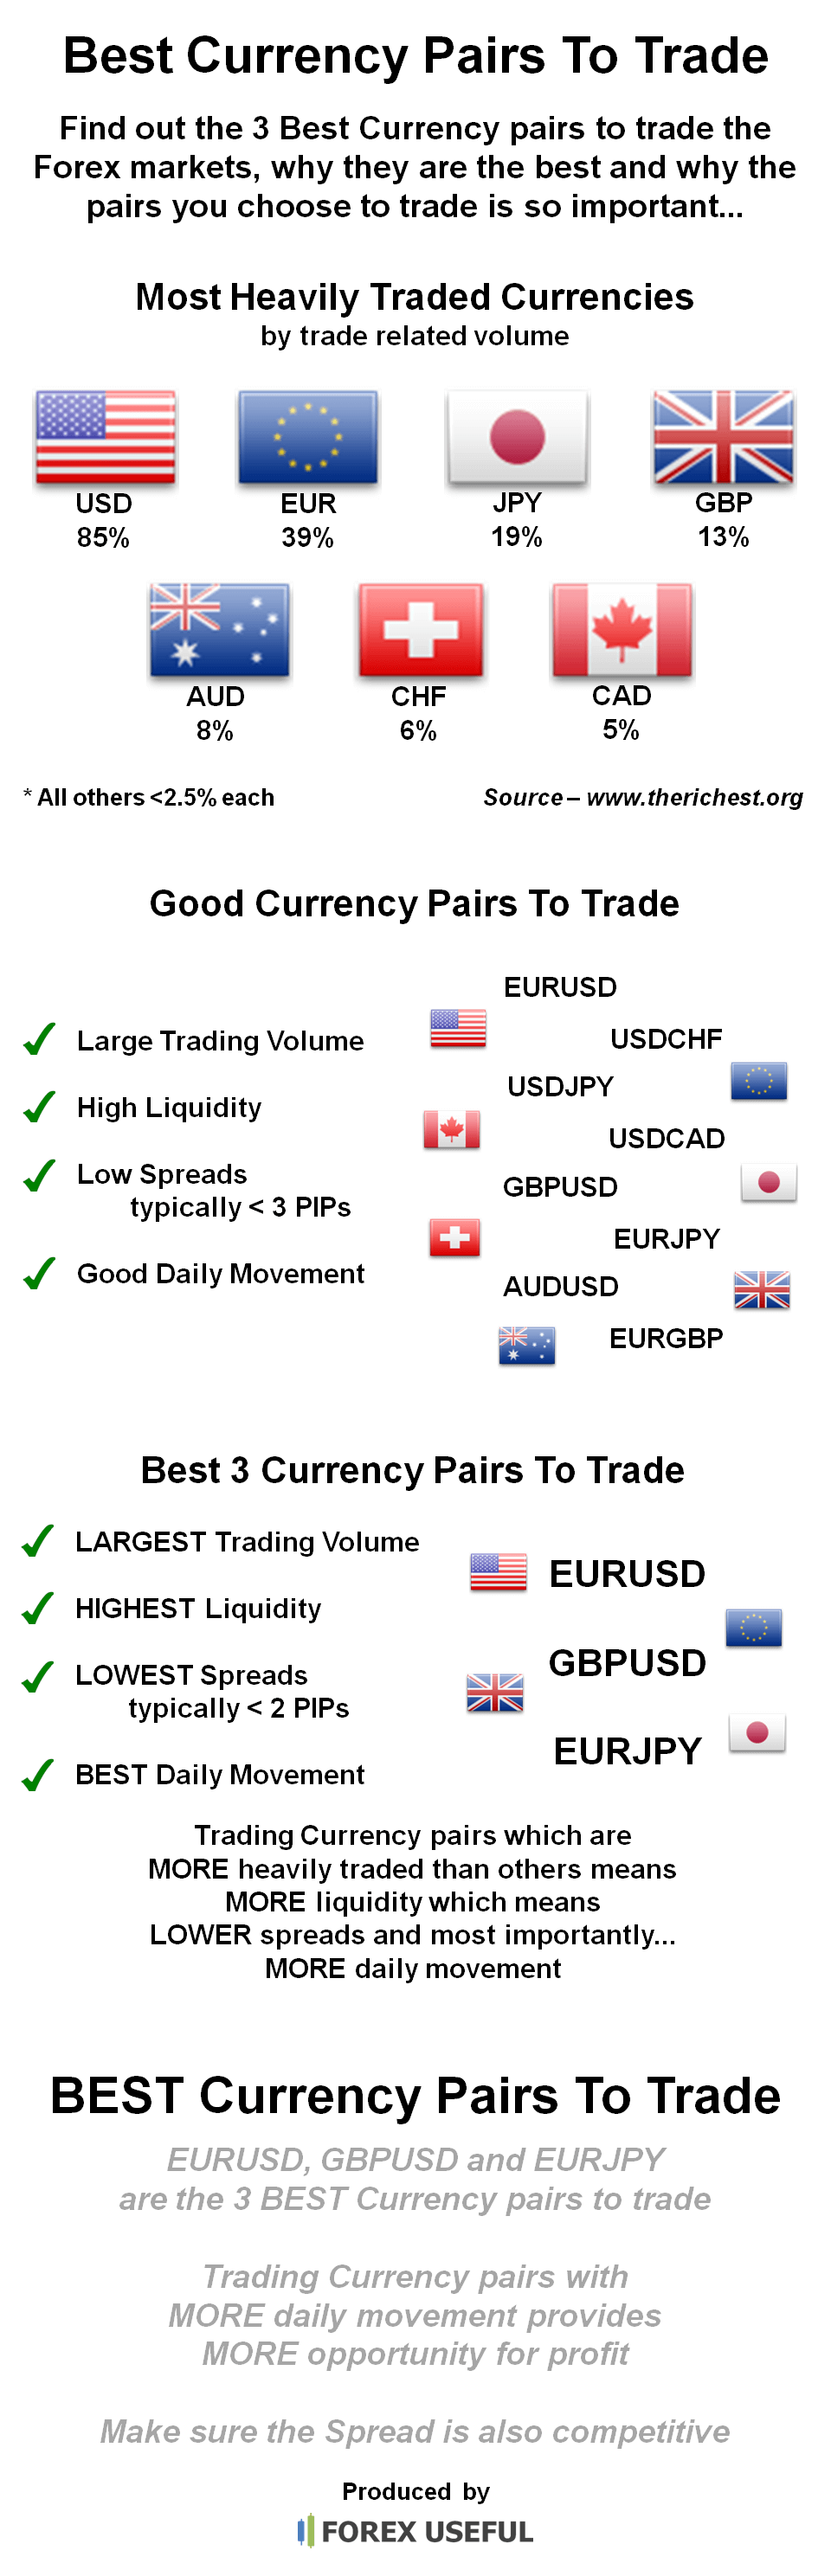 Top Forex Cross Pairs To Trade